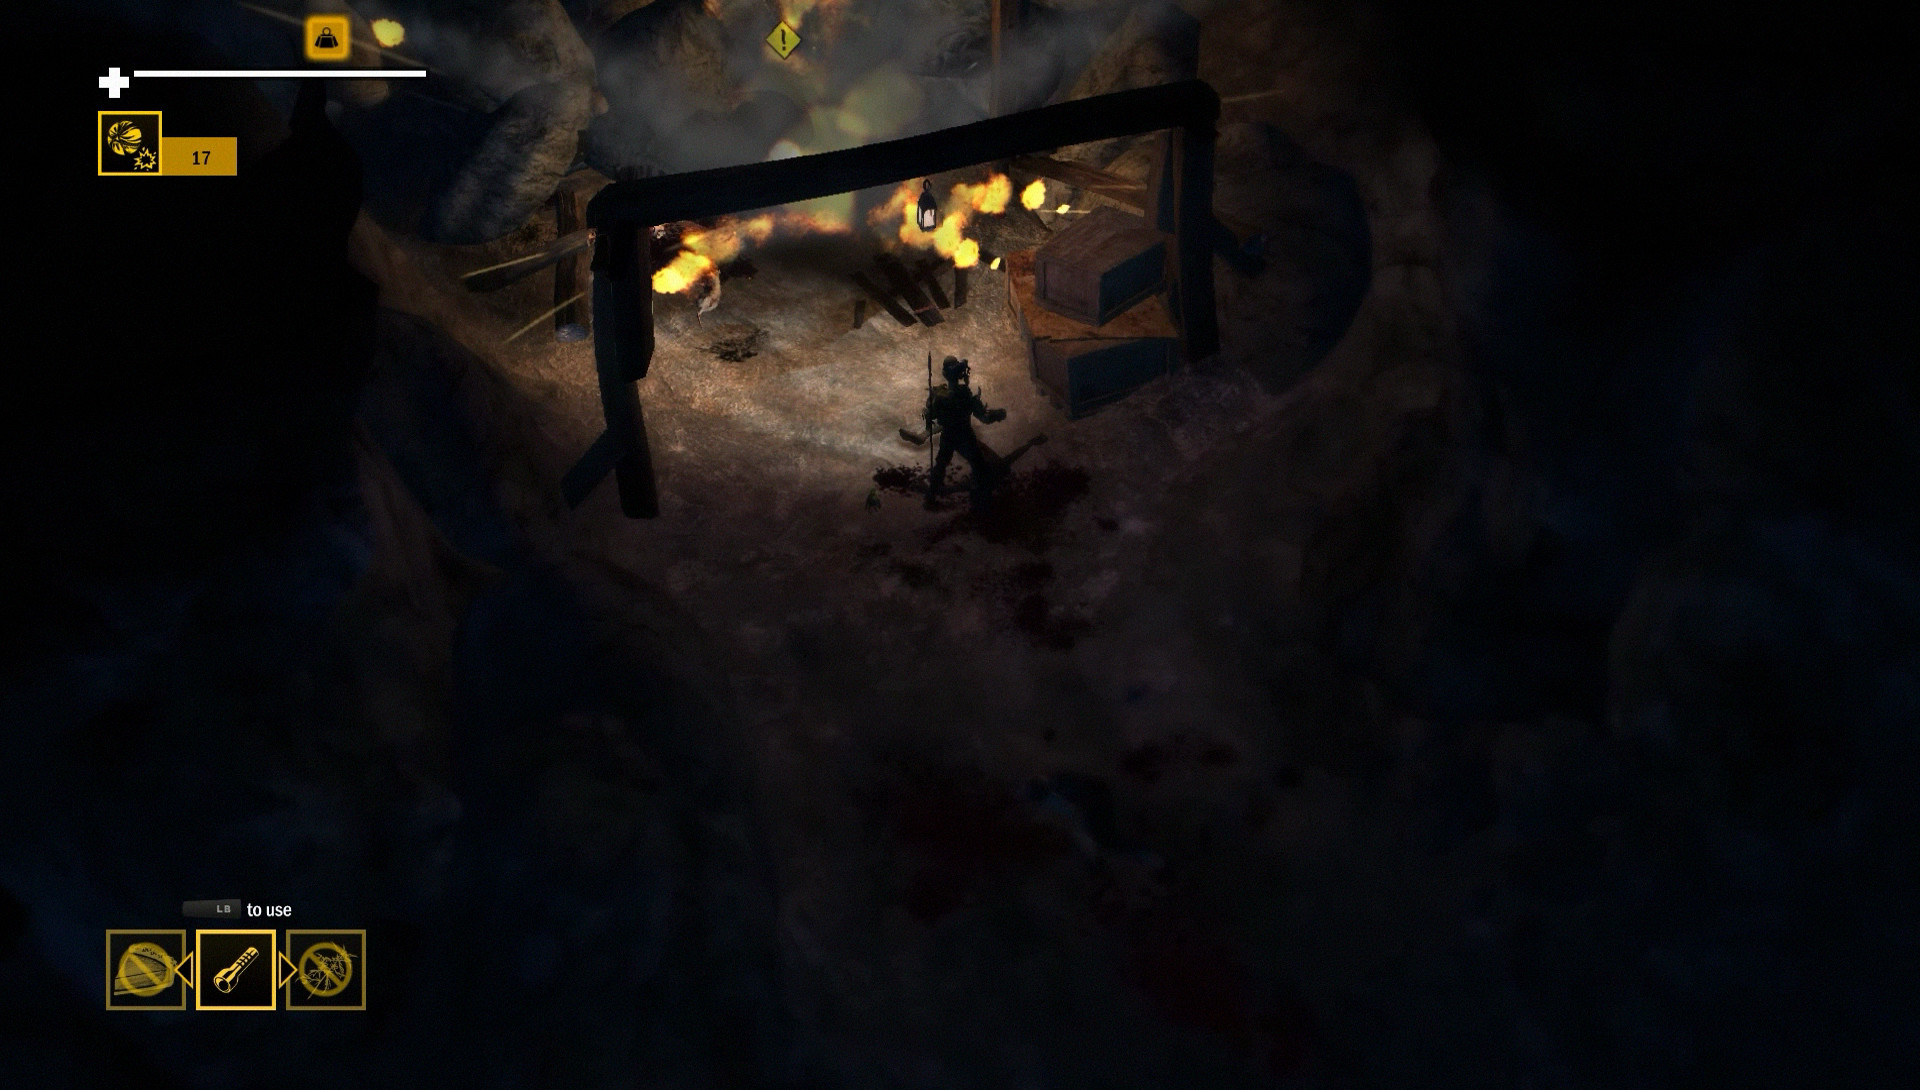 How To Survive 2 - Dead Dynamite screenshot